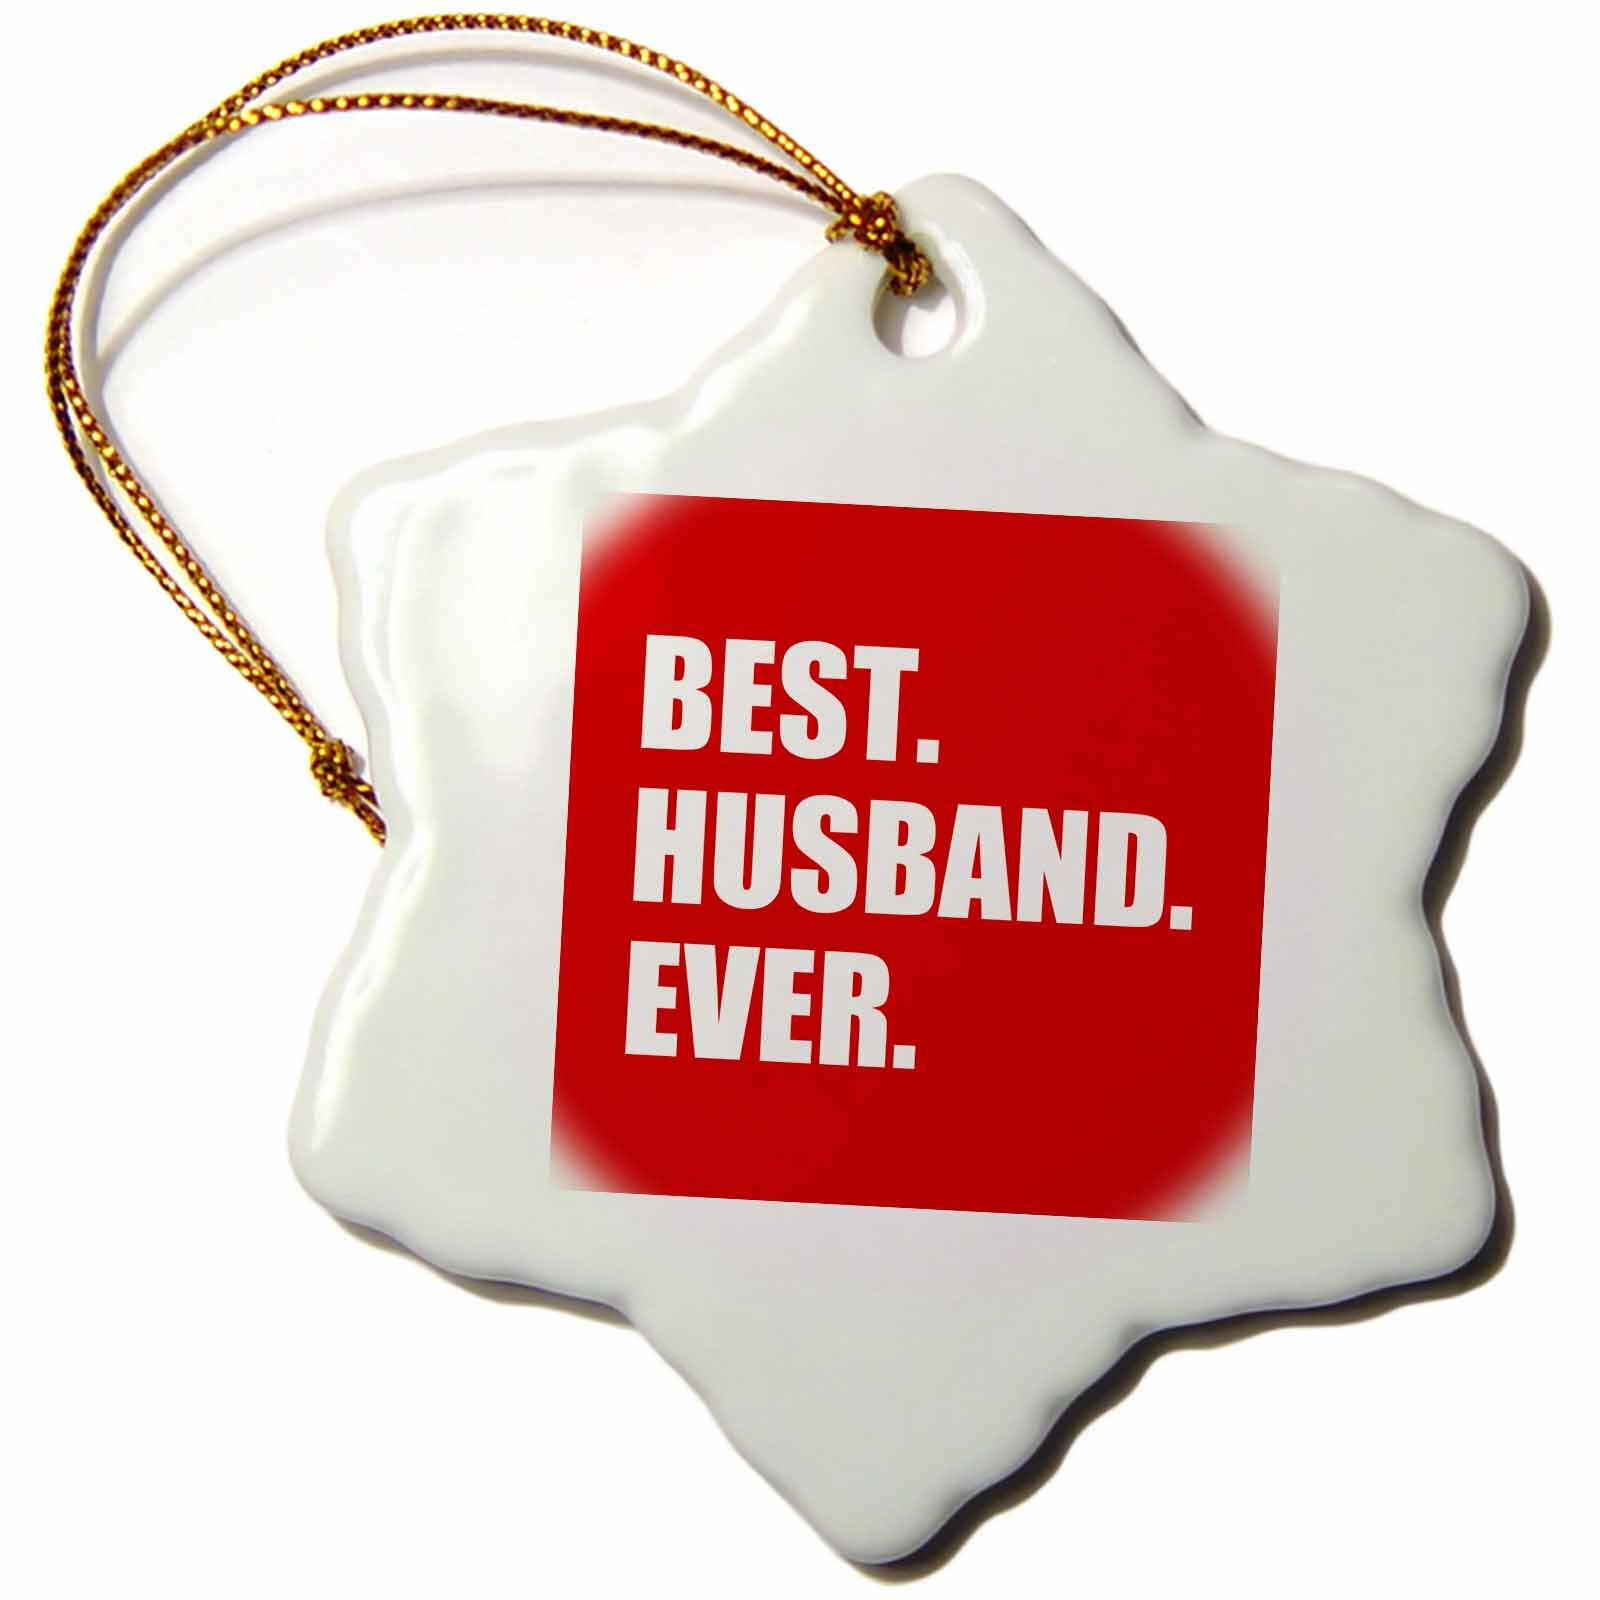 The Holiday Aisle Best Husband Ever Text Anniversary Romantic Gift For Him Snowflake Holiday Shaped Ornament Wayfair